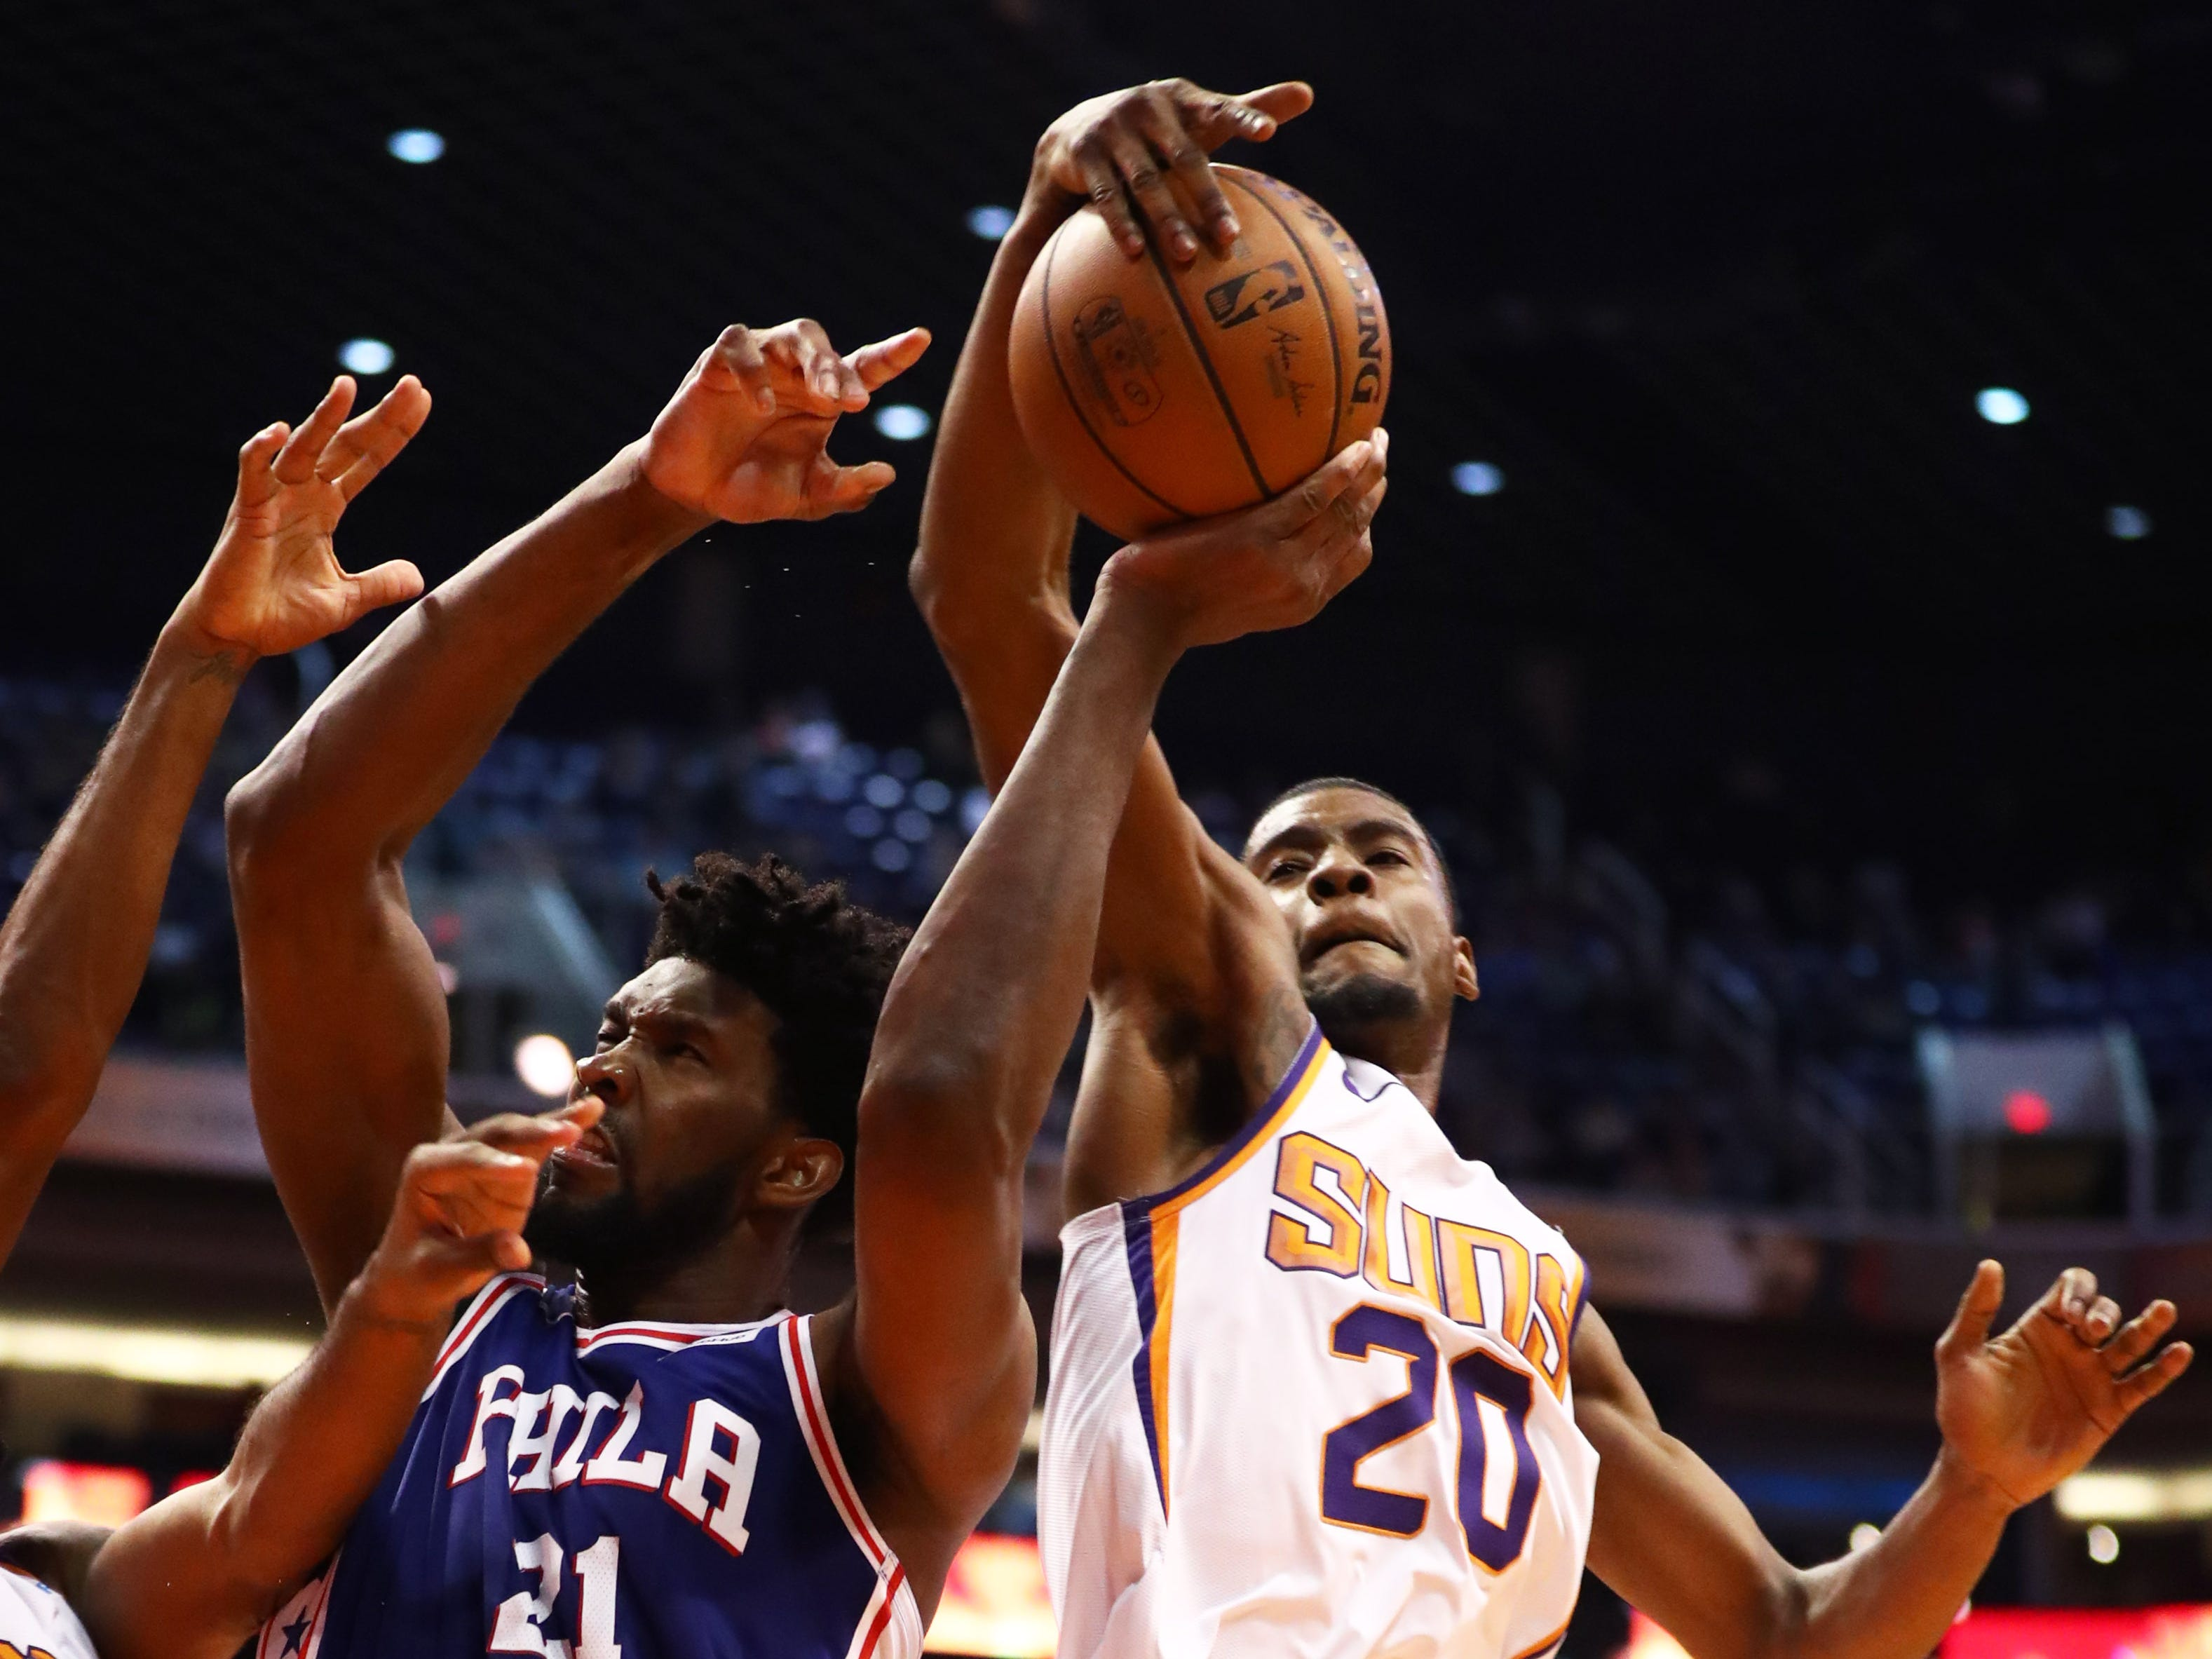 Jan 2, 2019; Phoenix, AZ, USA; Phoenix Suns forward Josh Jackson (20) blocks the shot of Philadelphia 76ers center Joel Embiid (21) in the second half at Talking Stick Resort Arena. Mandatory Credit: Mark J. Rebilas-USA TODAY Sports